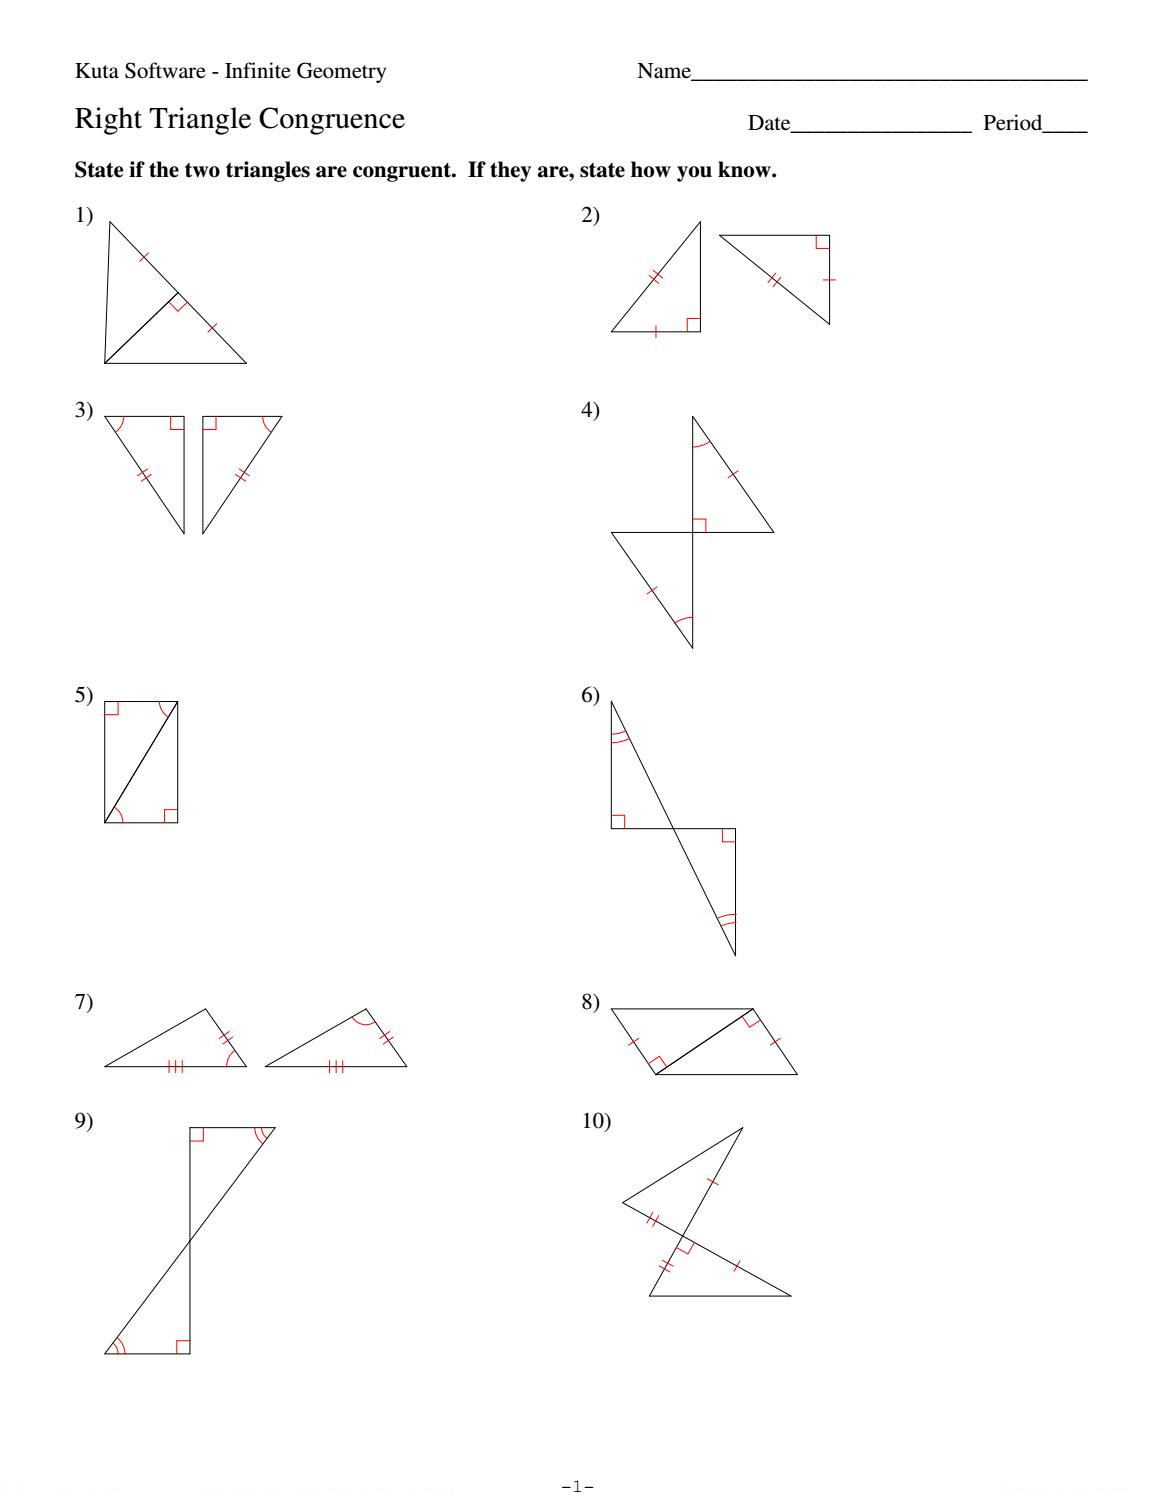 Triangle Congruence Worksheet Answers 4 Right Triangle Congruence by Hhs Geometry issuu